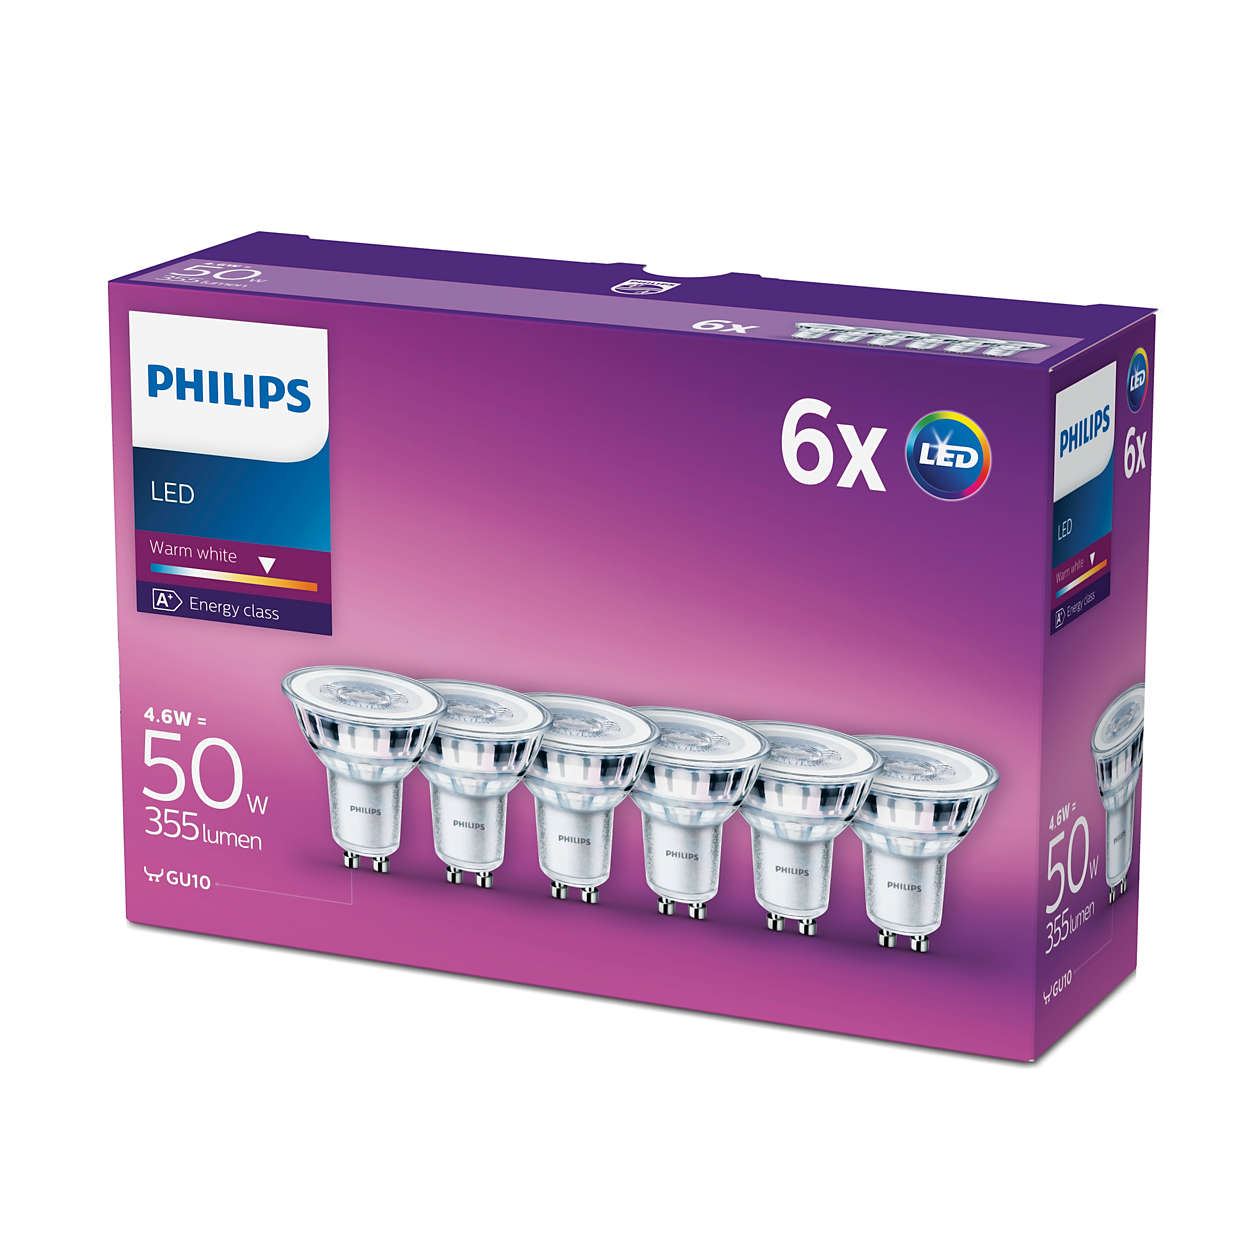 6 pk philips led glass gu10 50w a spot light bulb lamp 355lm warm white ebay. Black Bedroom Furniture Sets. Home Design Ideas